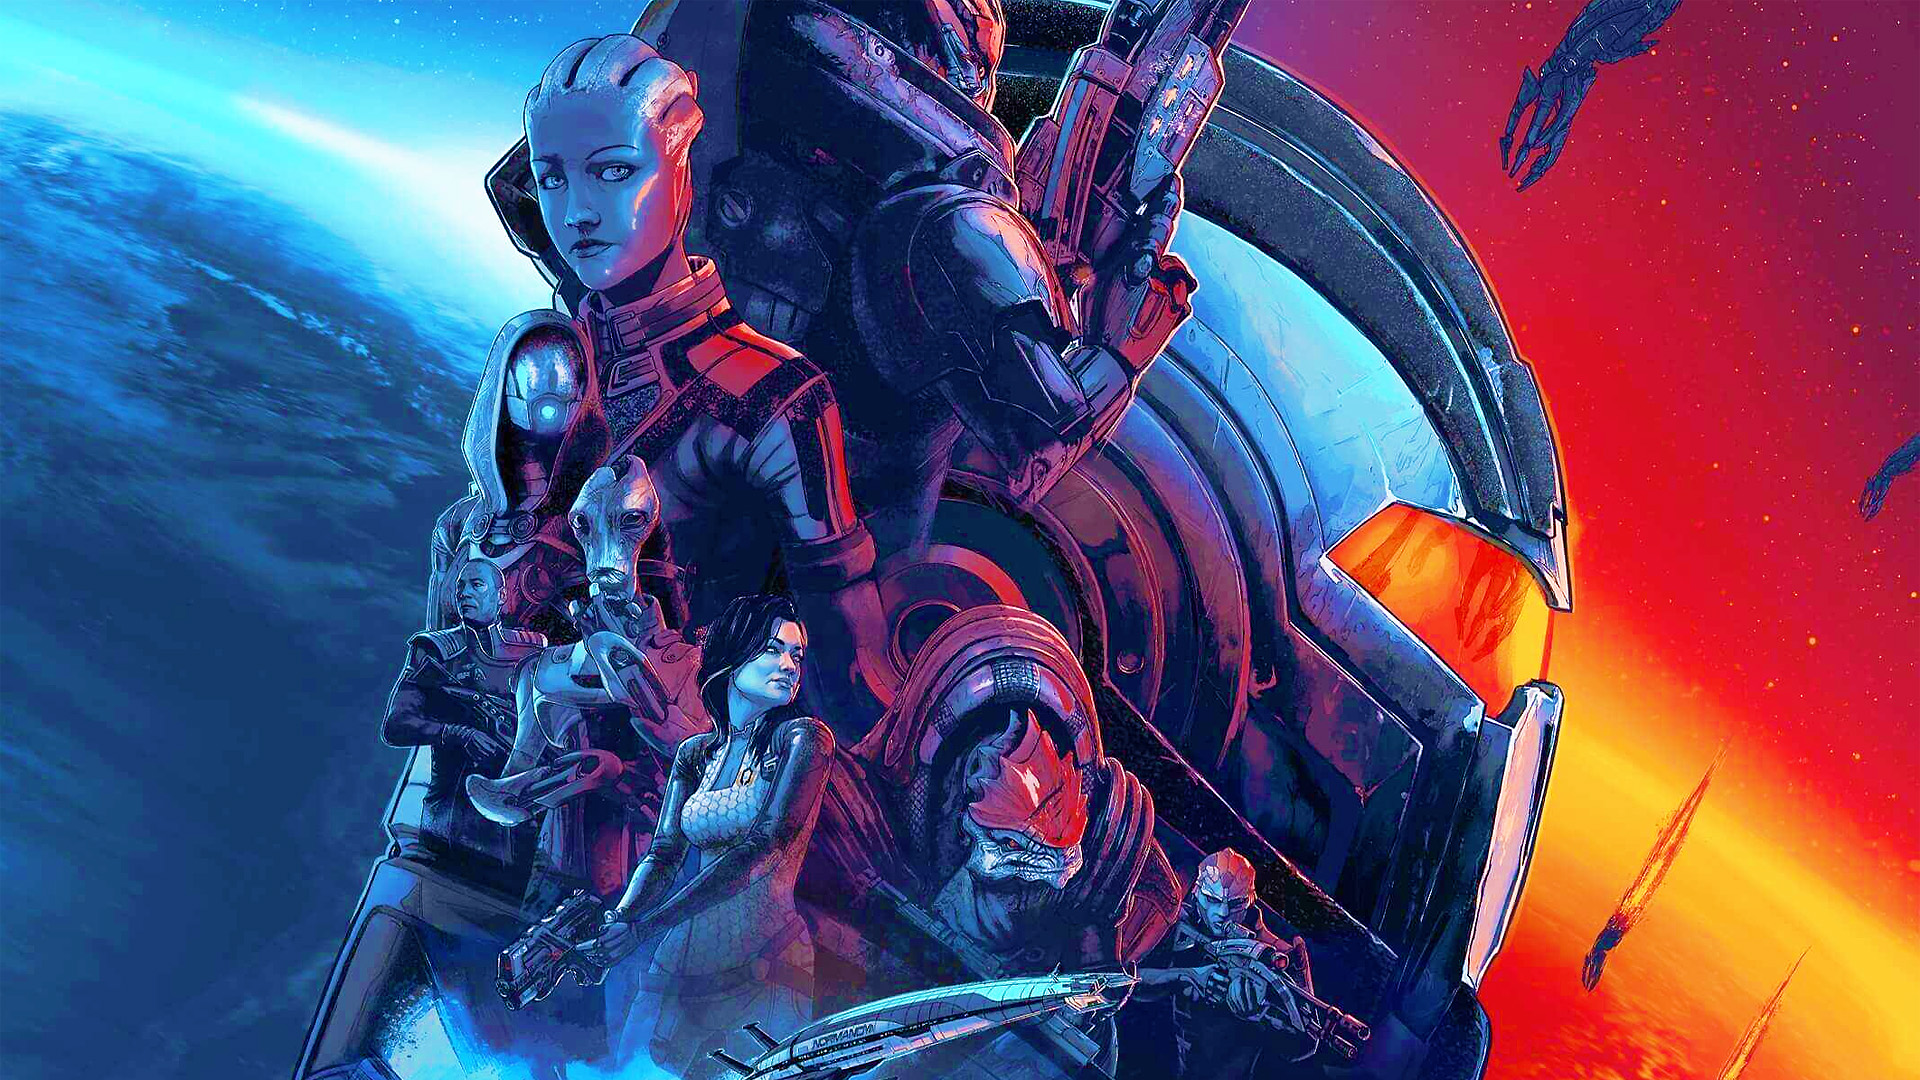 Mass Effect How to Use Powers Abilities and Skills